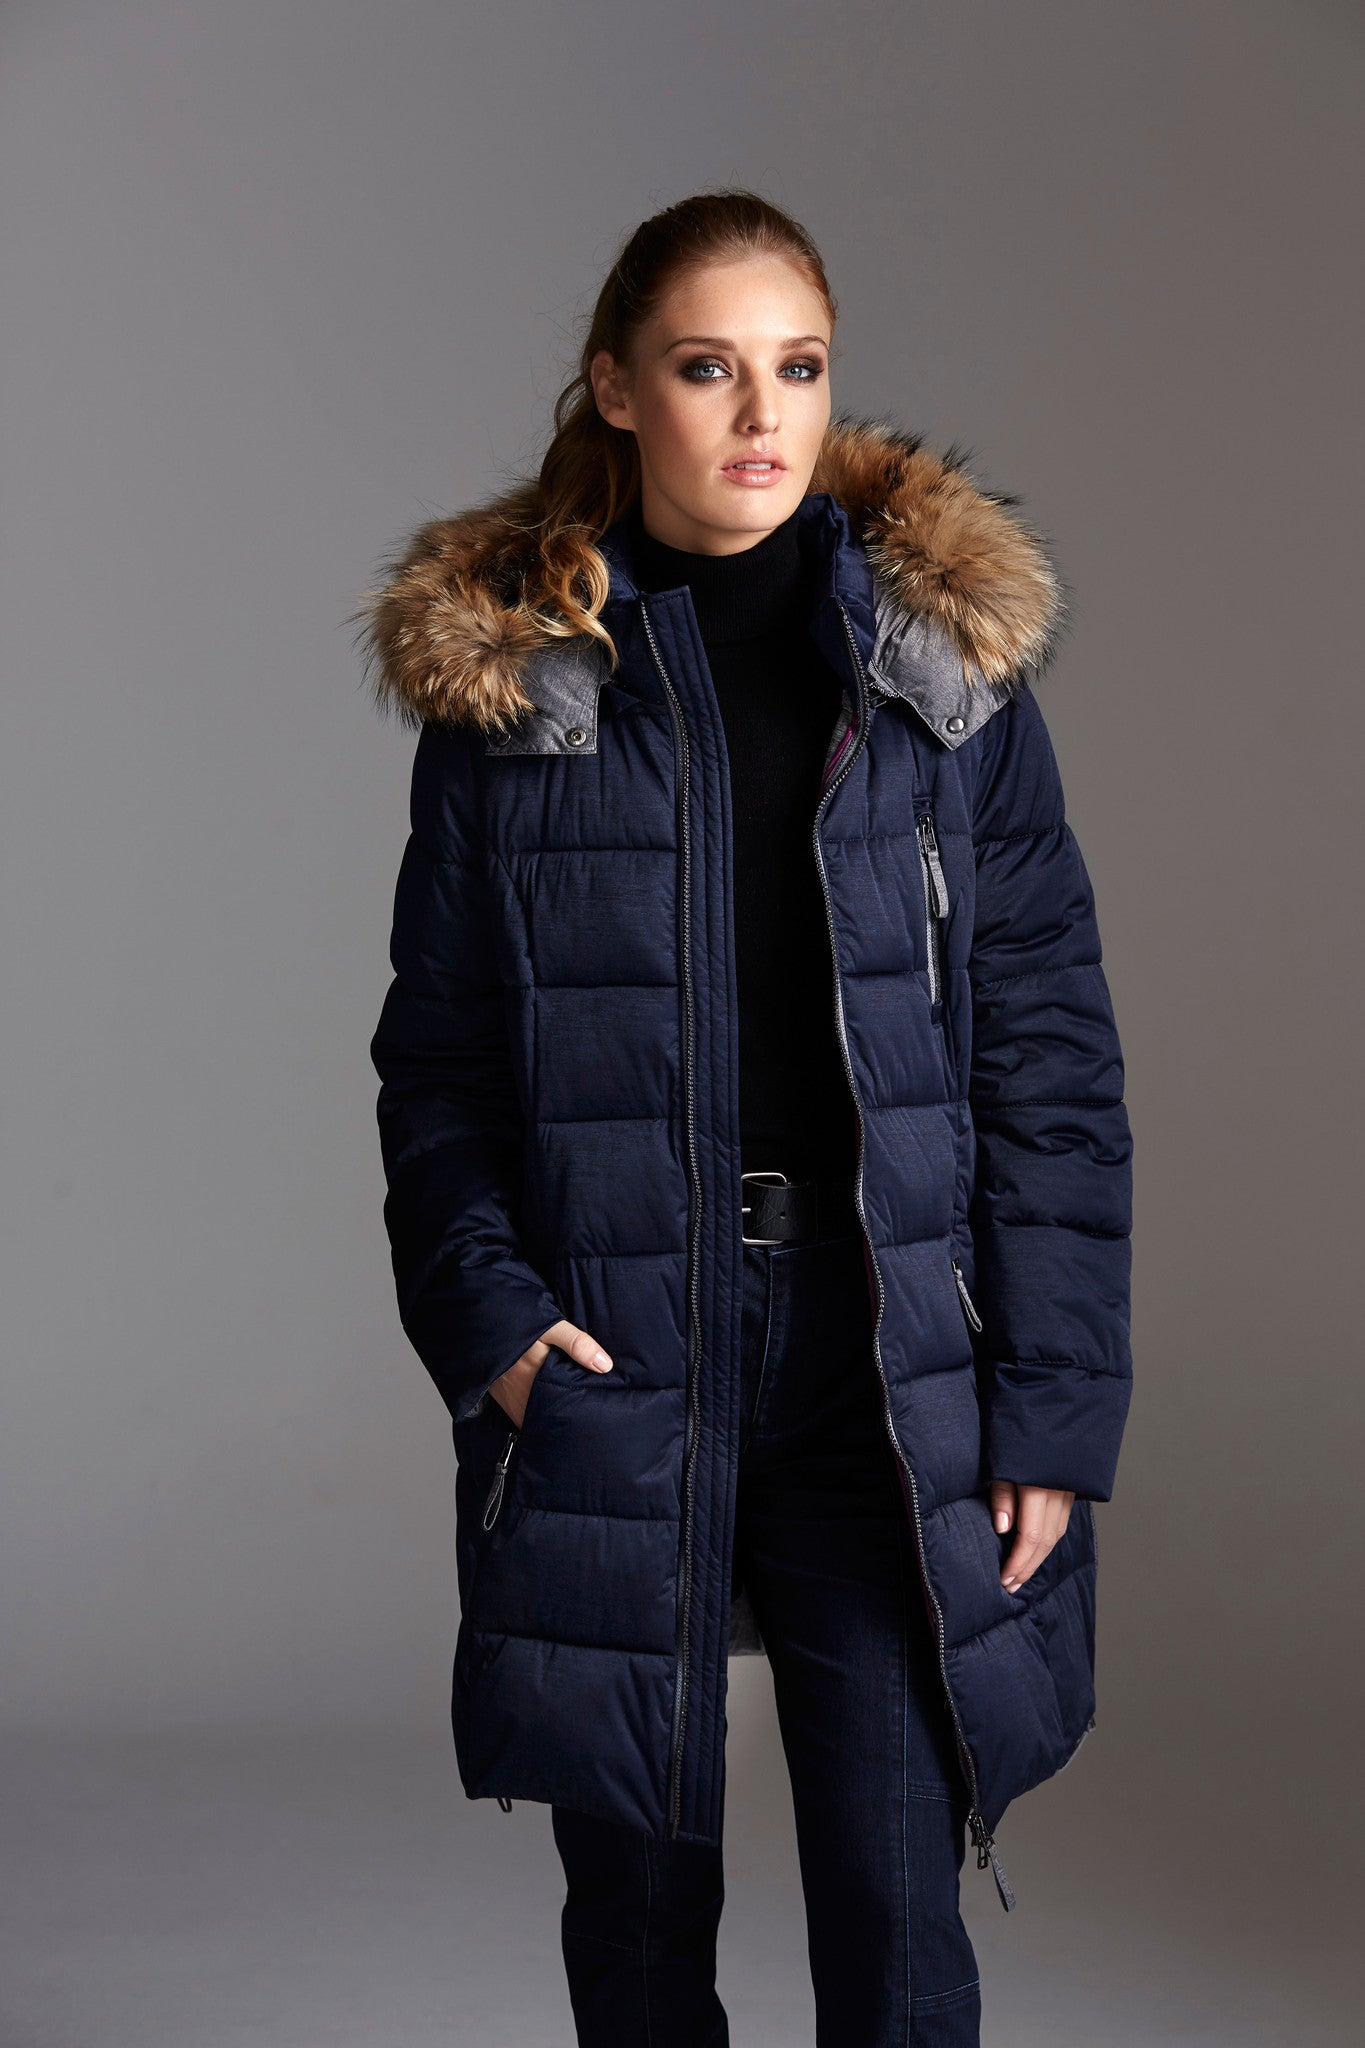 Expedition For Sale >> Marianne Style - Nuage Coats, Nuage Coats Price, Etage ...